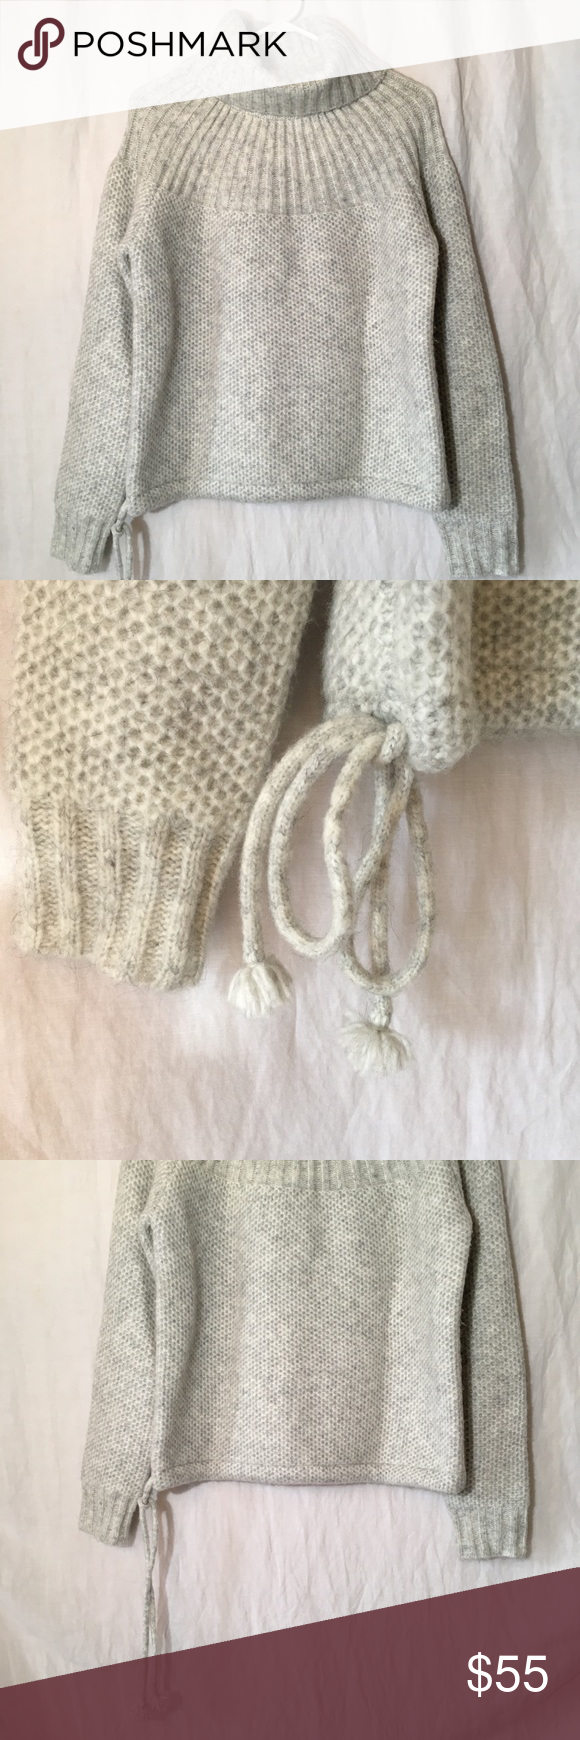 .Madewell. Oversized Wool Blend Cowl Neck Sweater